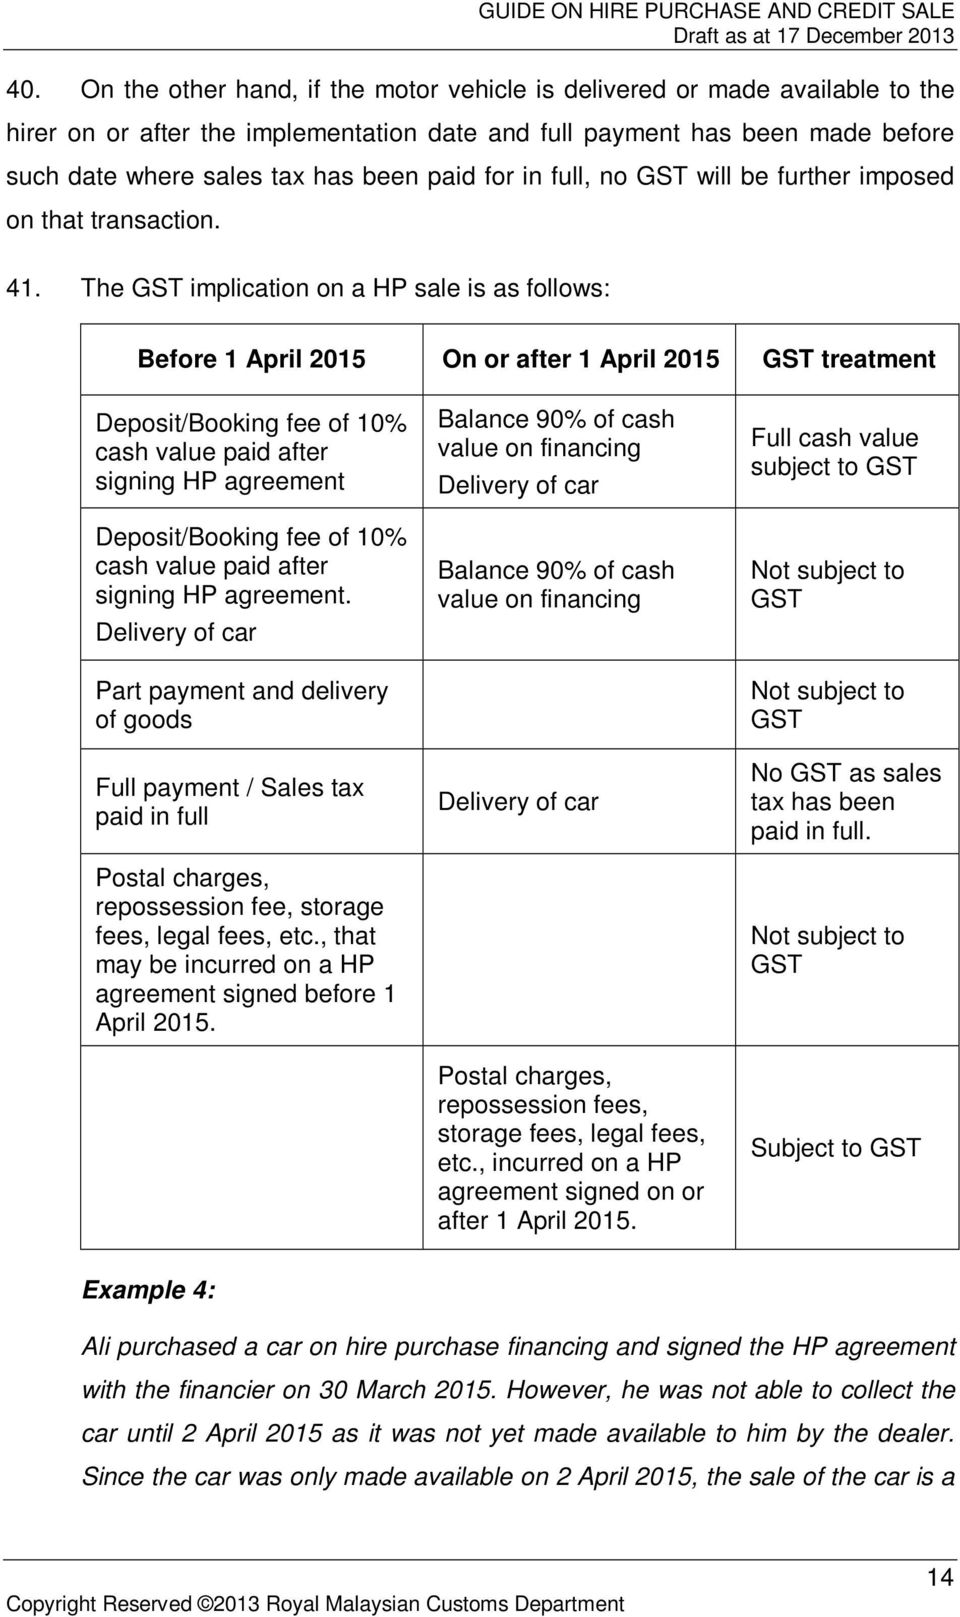 The GST implication on a HP sale is as follows: Before 1 April 2015 On or after 1 April 2015 GST treatment Deposit/Booking fee of 10% cash value paid after signing HP agreement Deposit/Booking fee of